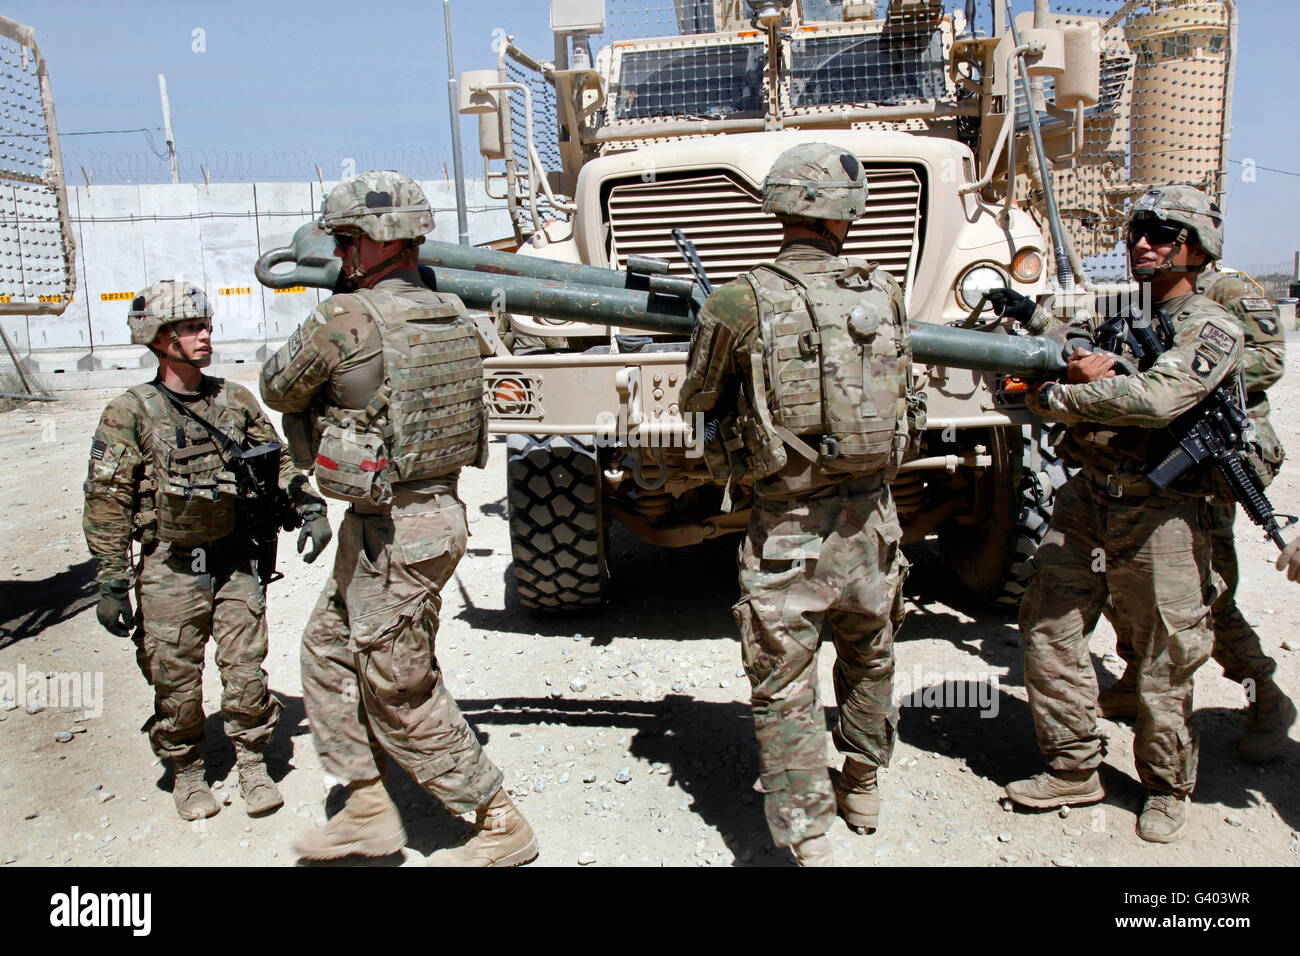 U.S. soldiers move a tow bar from one vehicle to another. - Stock Image